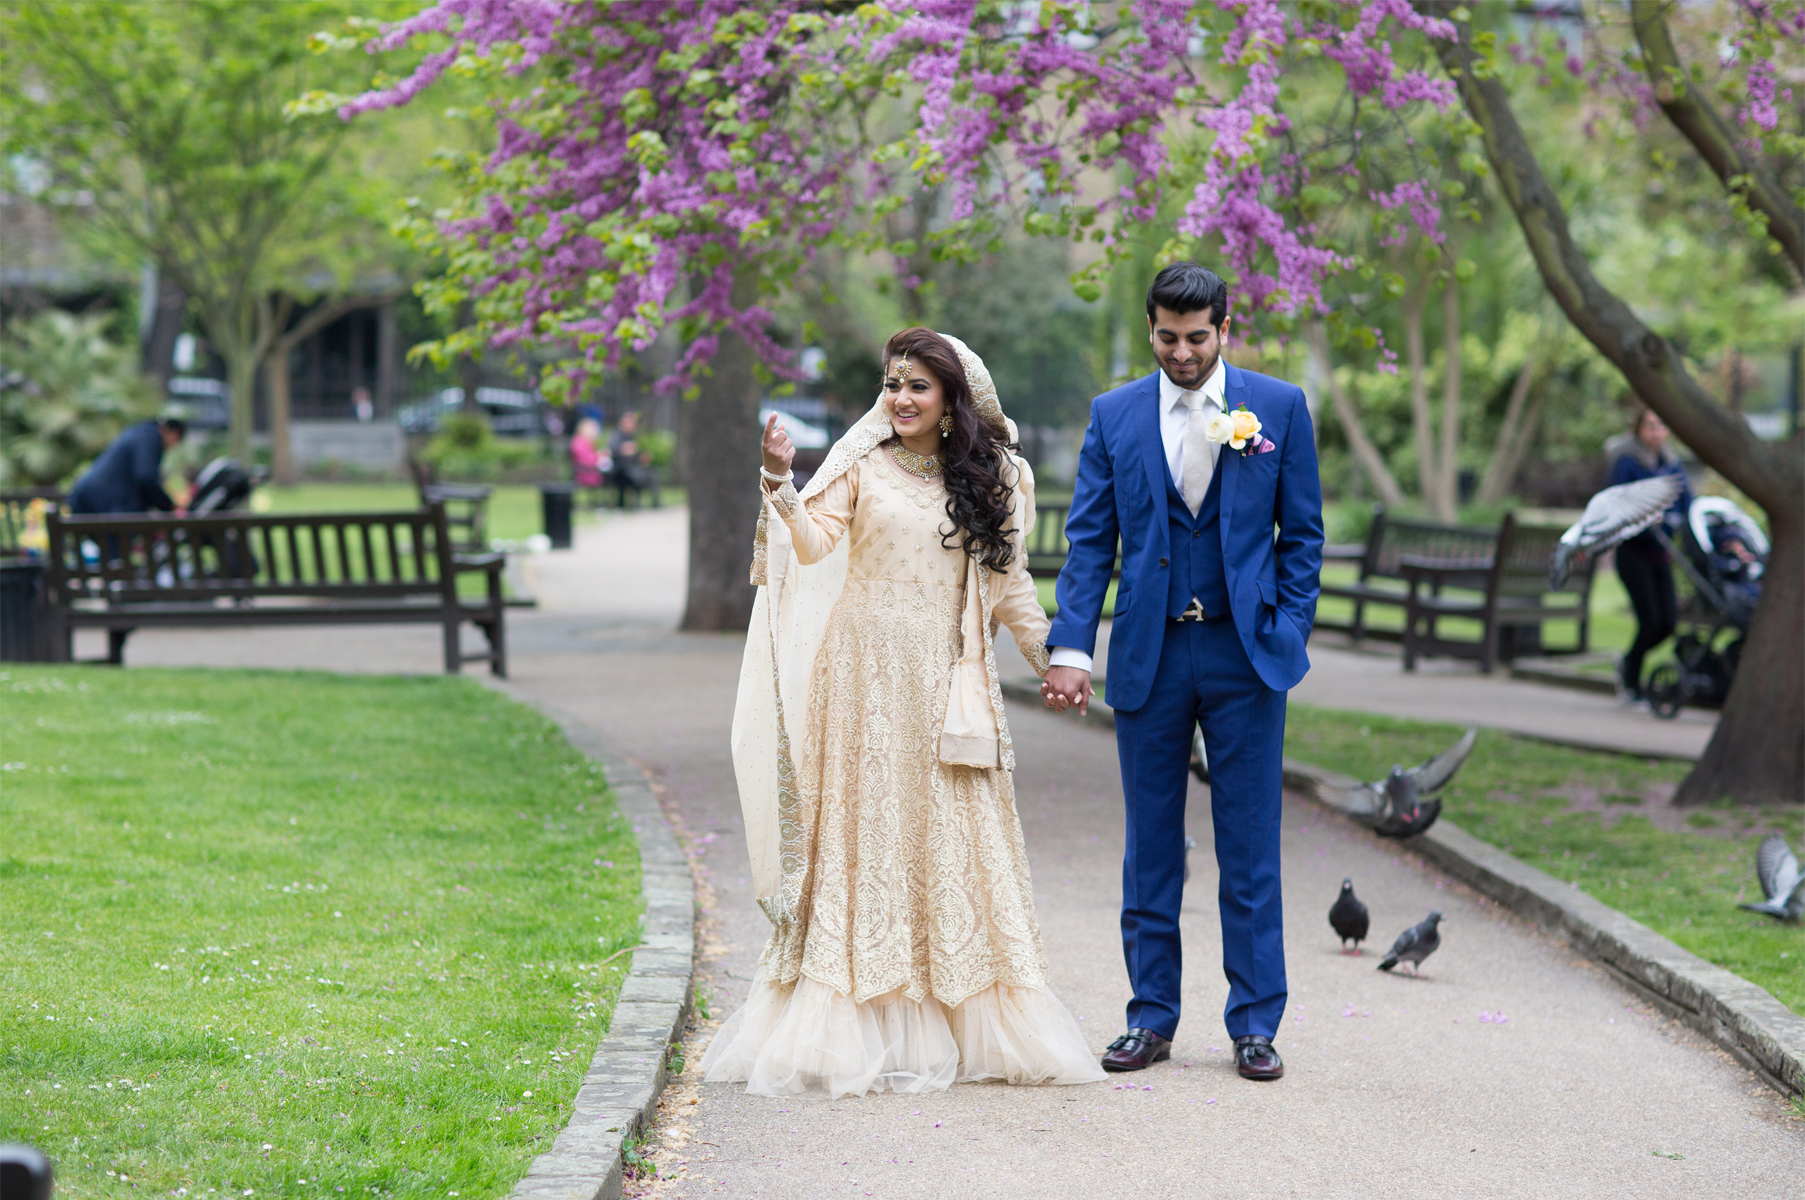 wedding photography, asian wedding photography, asian wedding photography london